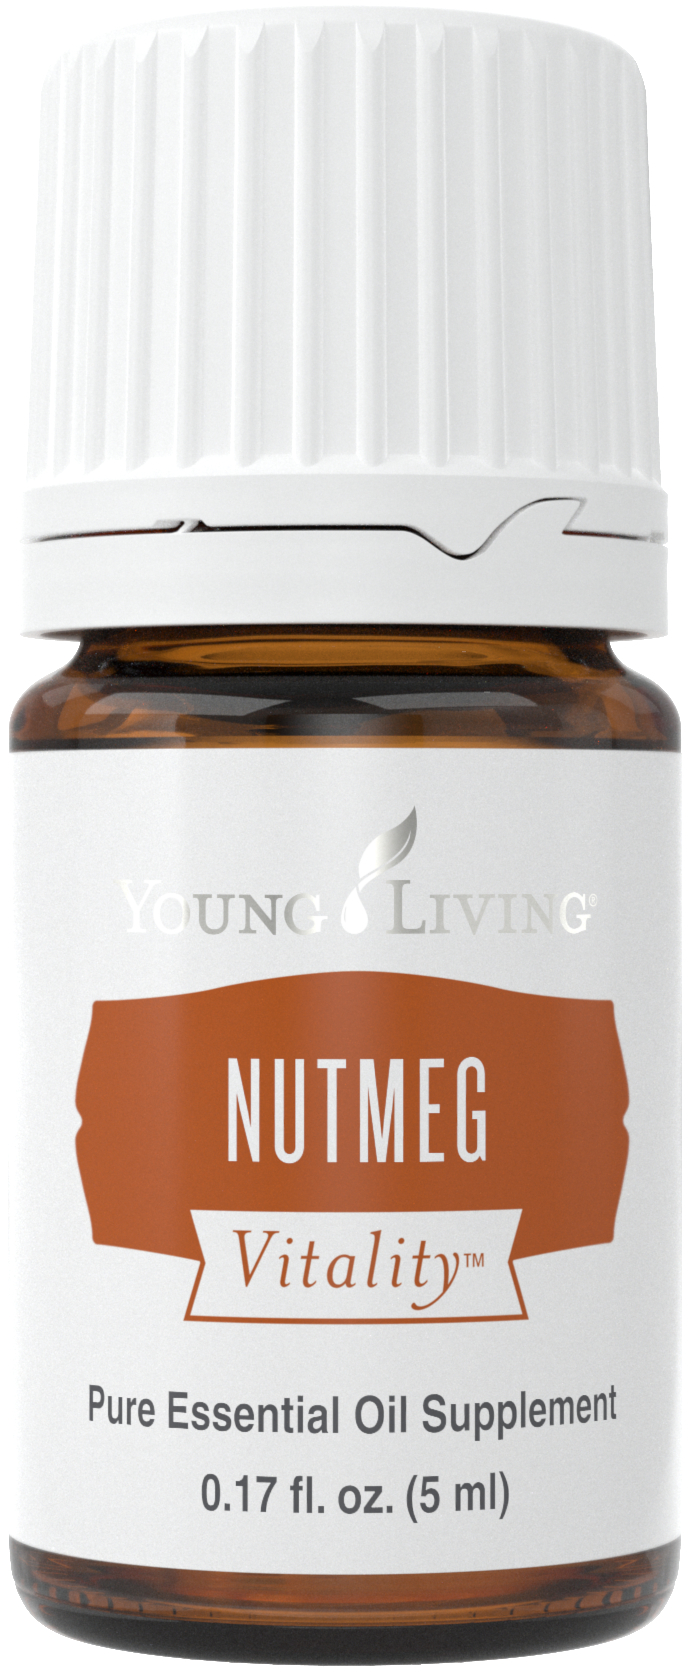 Nutmeg Vitality - Young Living Essential Oils